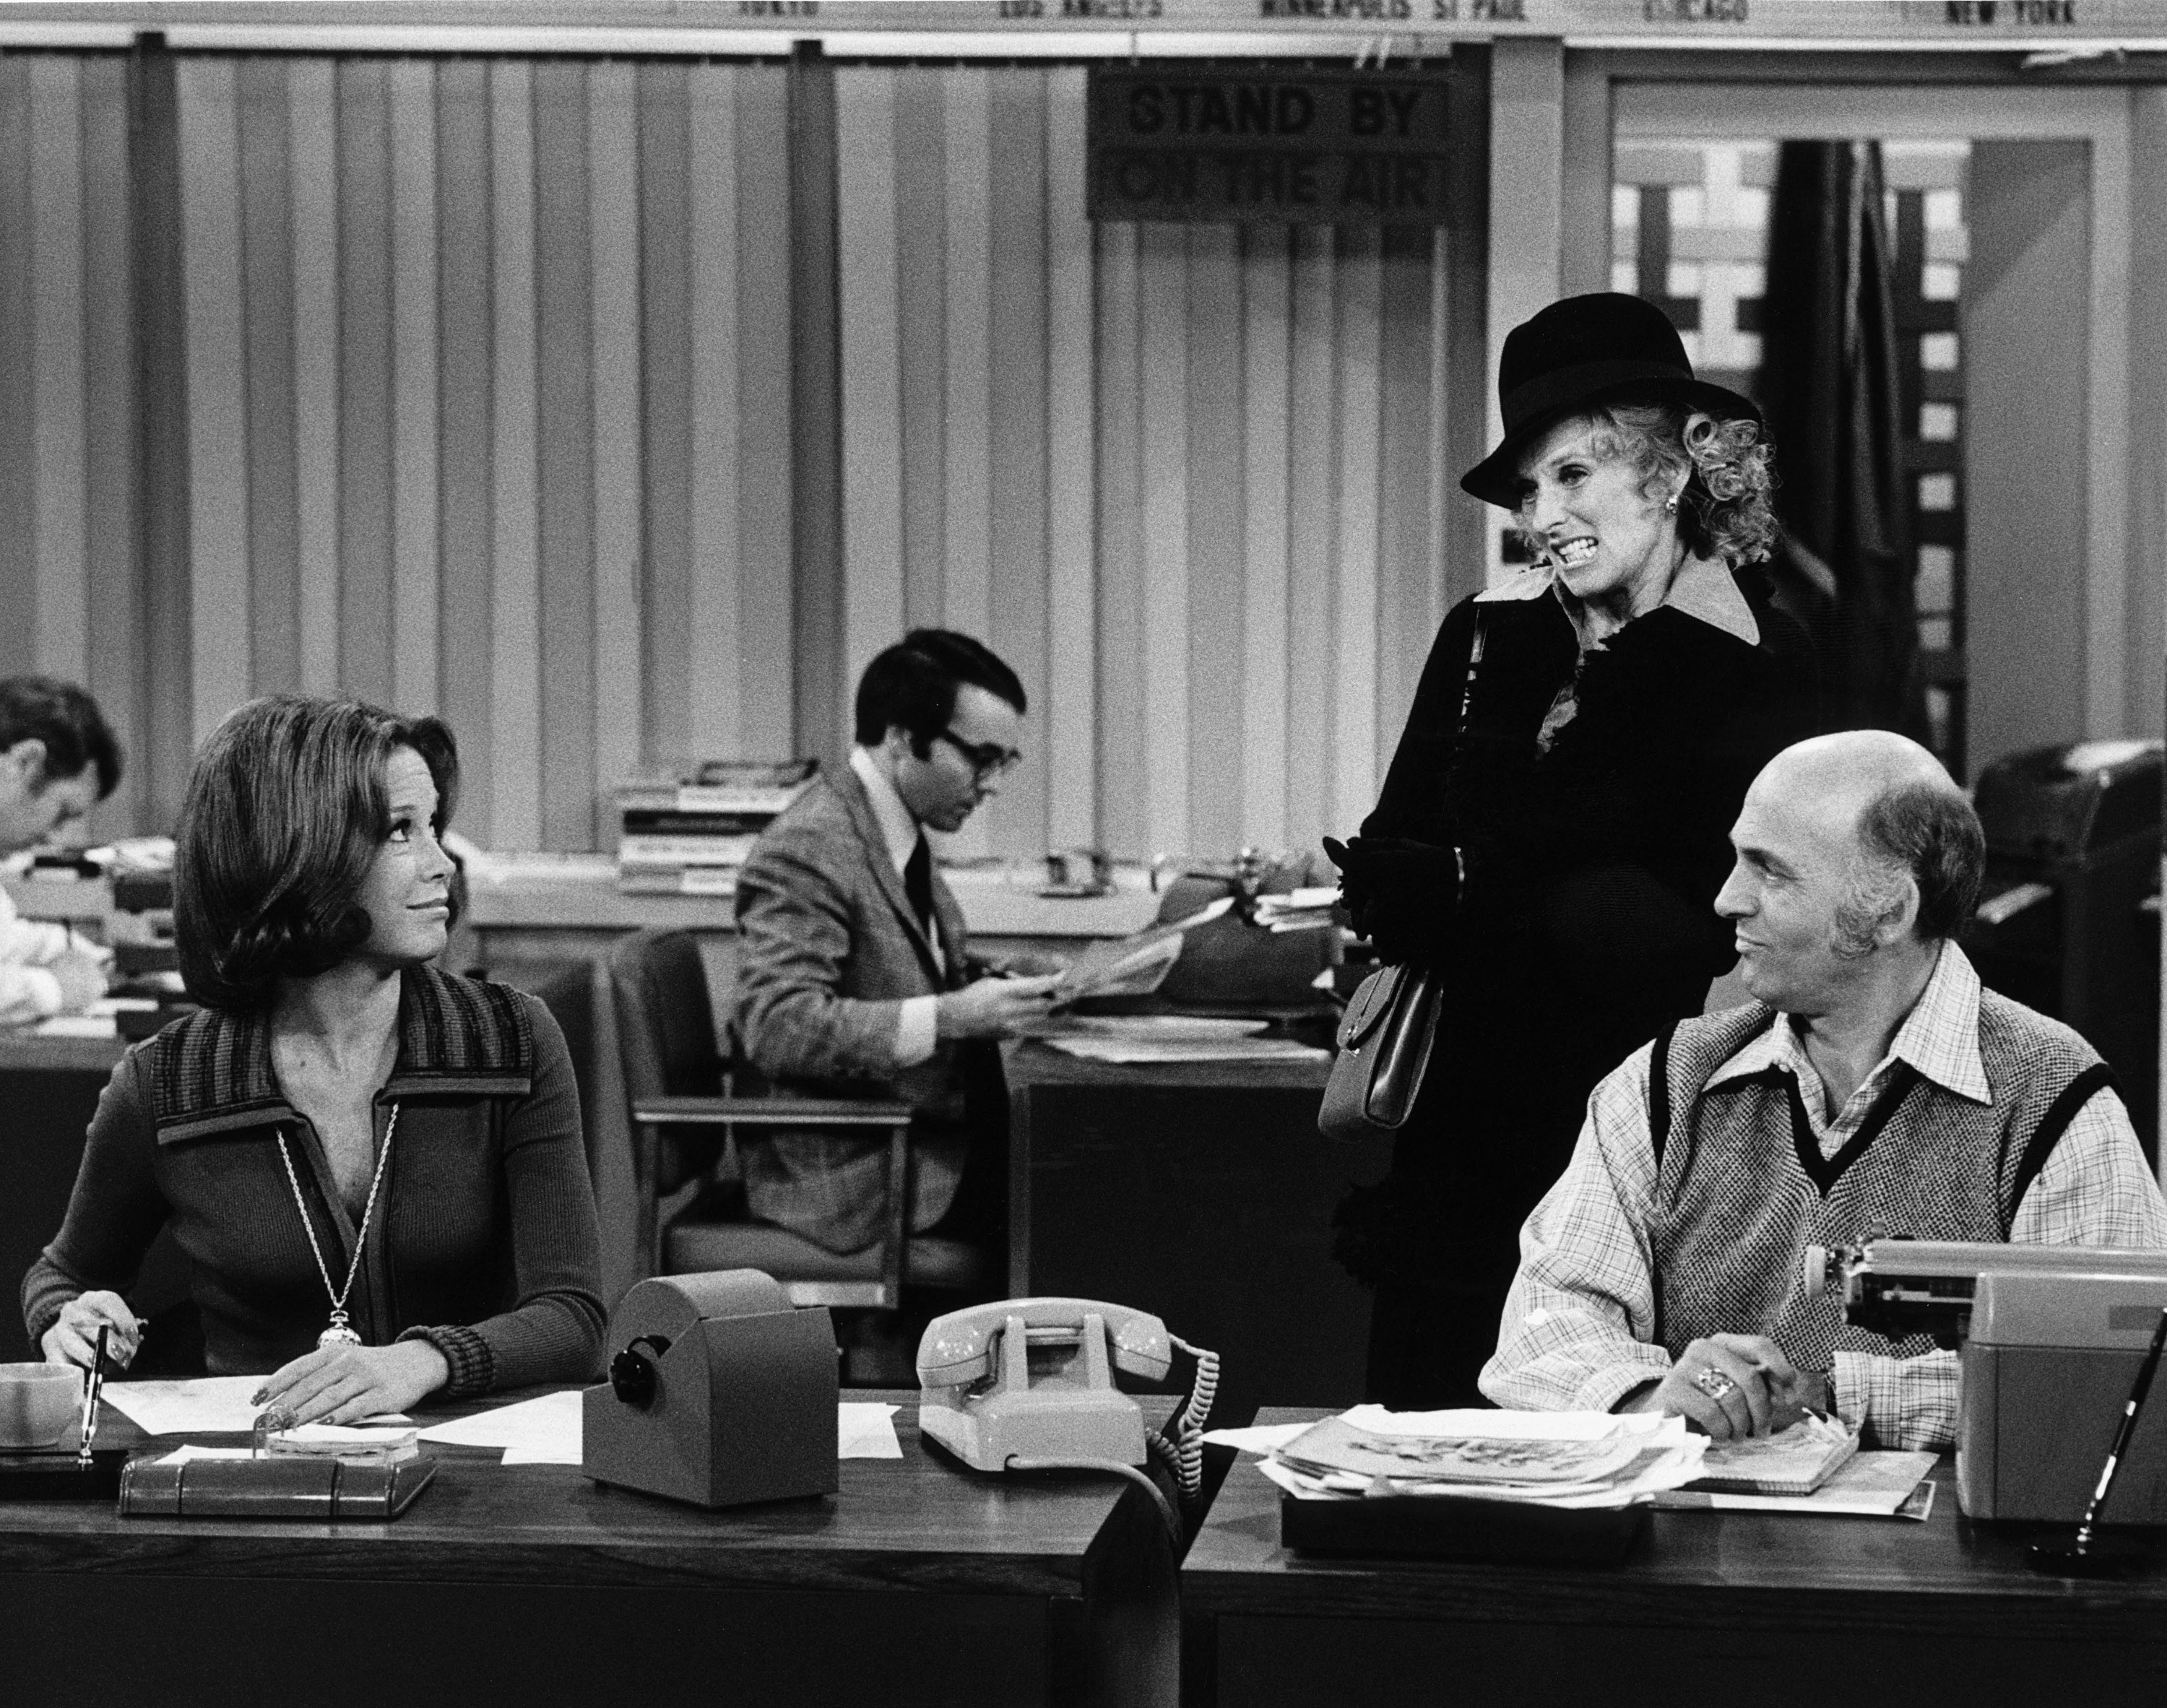 Mary Tyler Moore and Gavin MacLeod sit at a desk while Cloris Leachman stands behind them